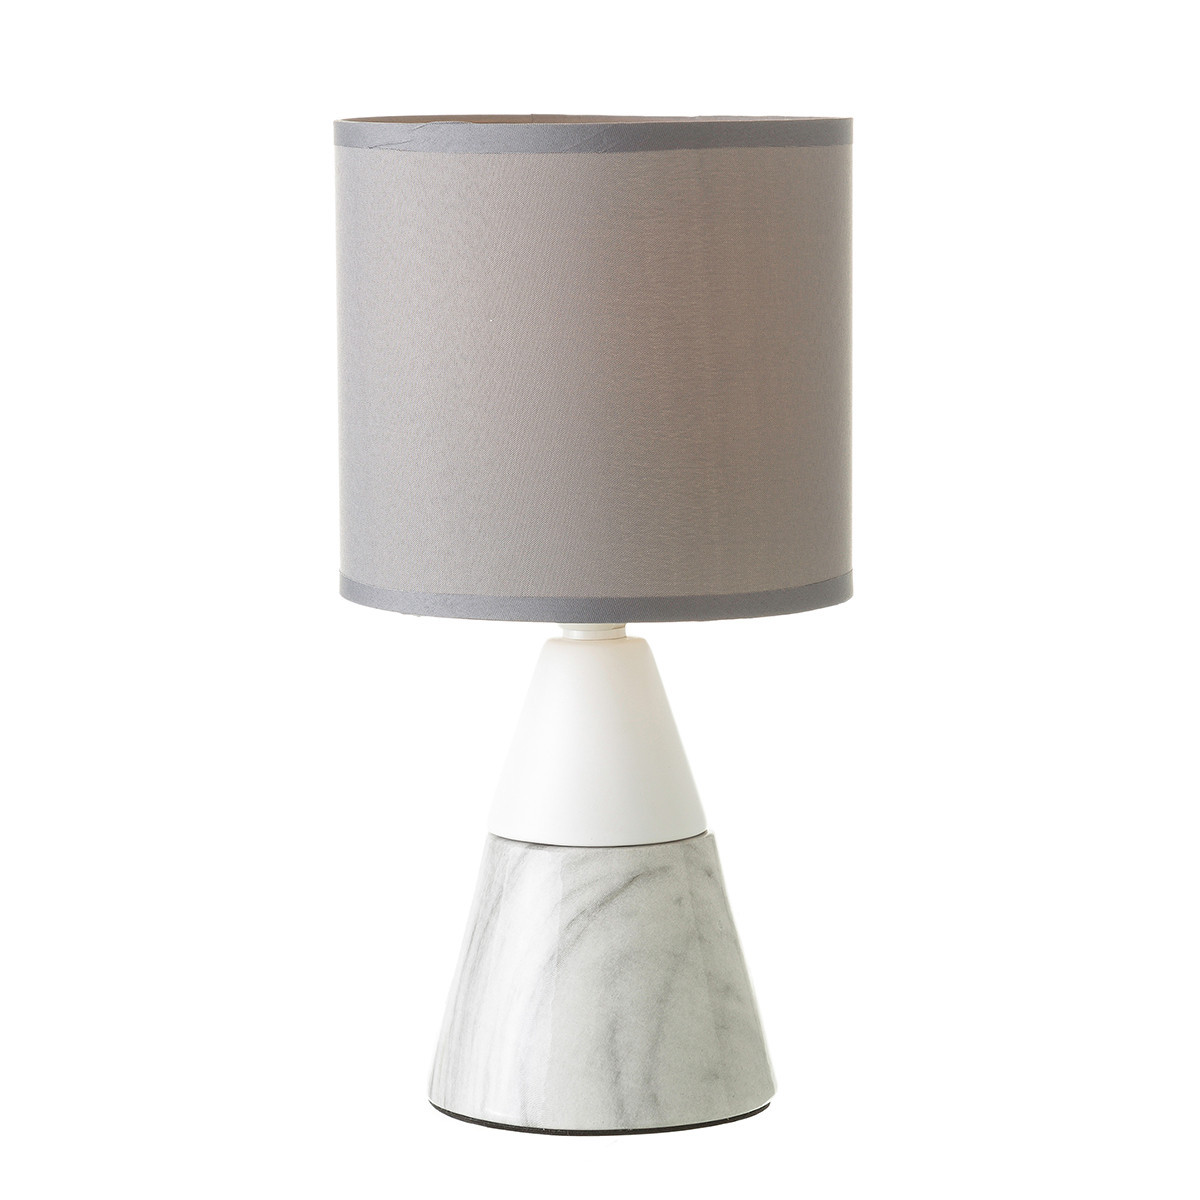 Table lamp, made of Ceramic, White and Grey. Design of Marble, with Modern style - Home and More